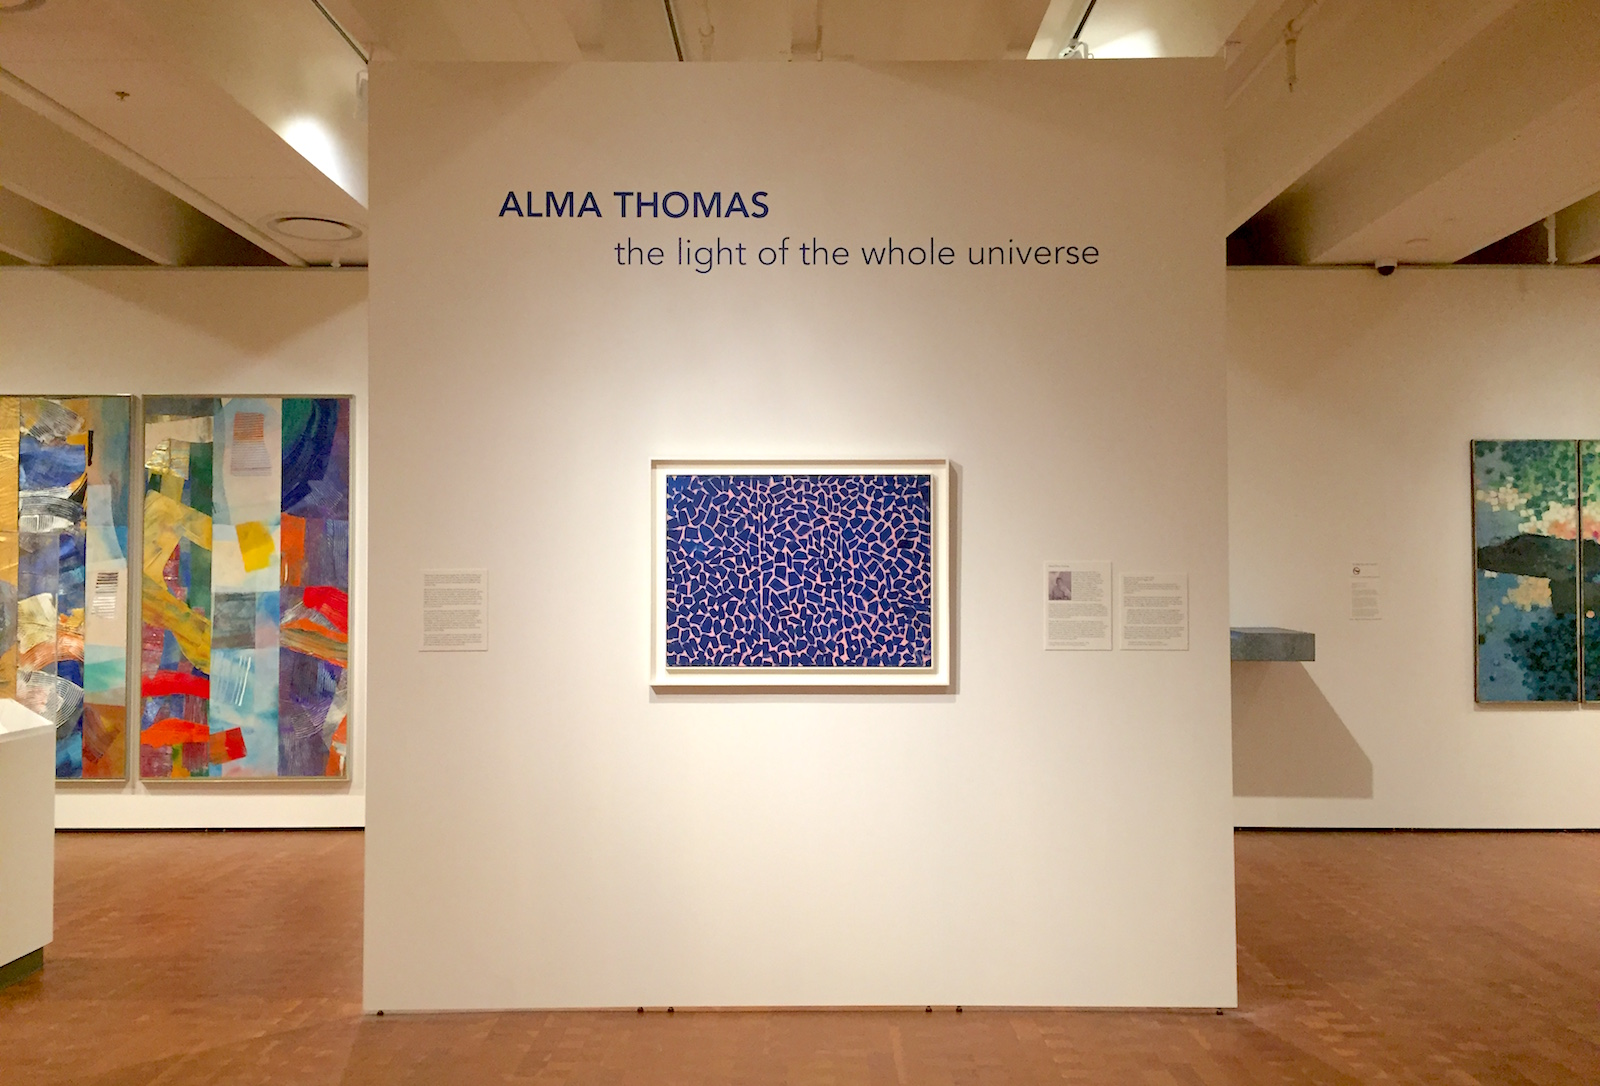 DC's own Alma Thomas rises to new heights in the art world